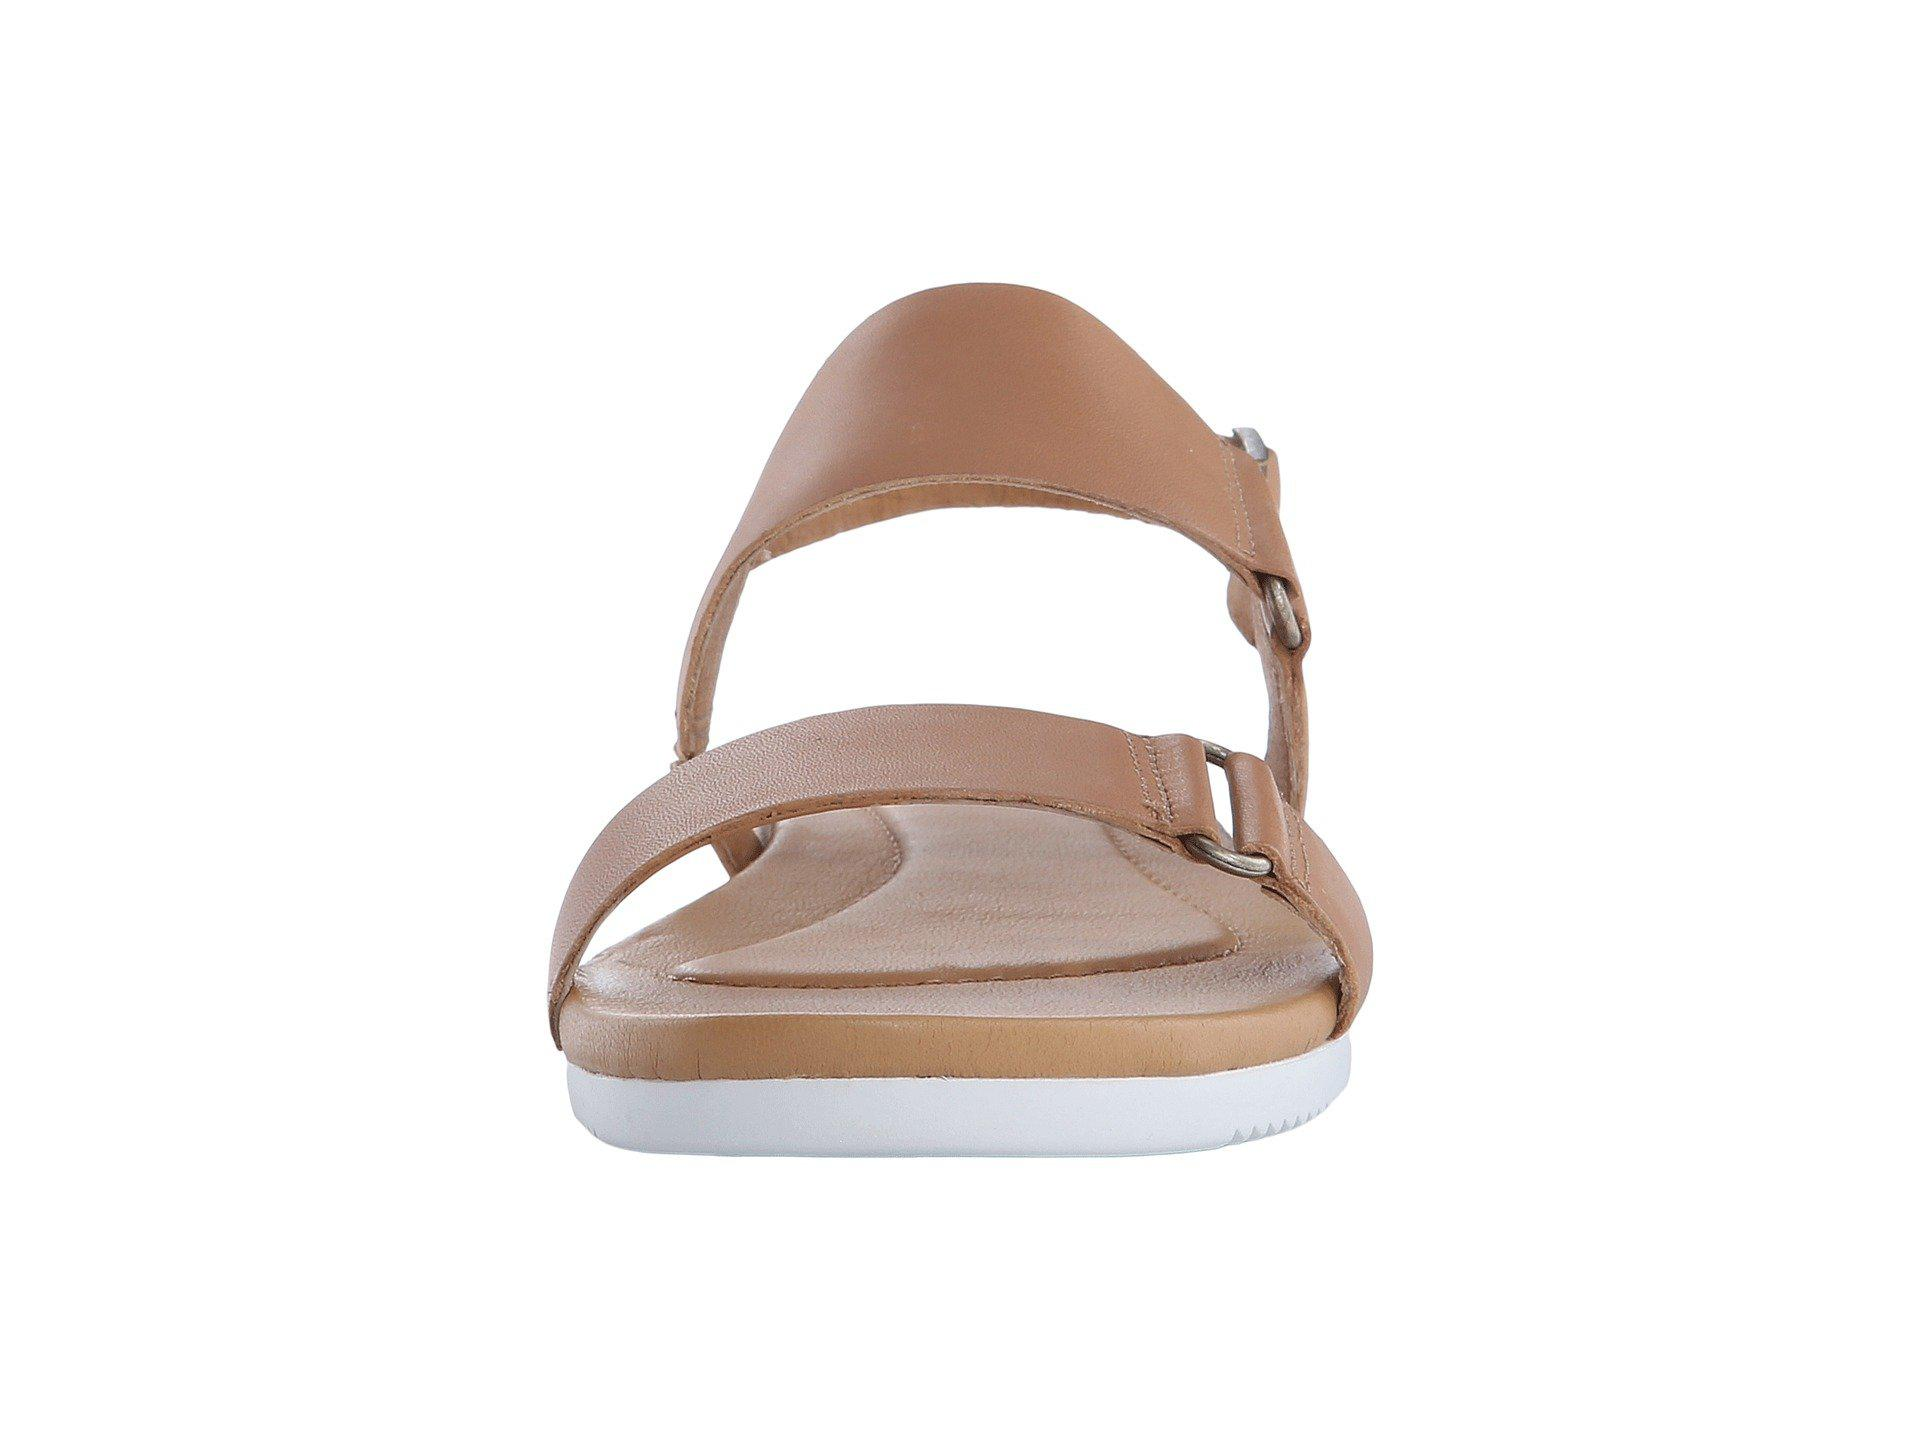 feb719e9aa7c Lyst - Teva Avalina Sandal Leather in Brown